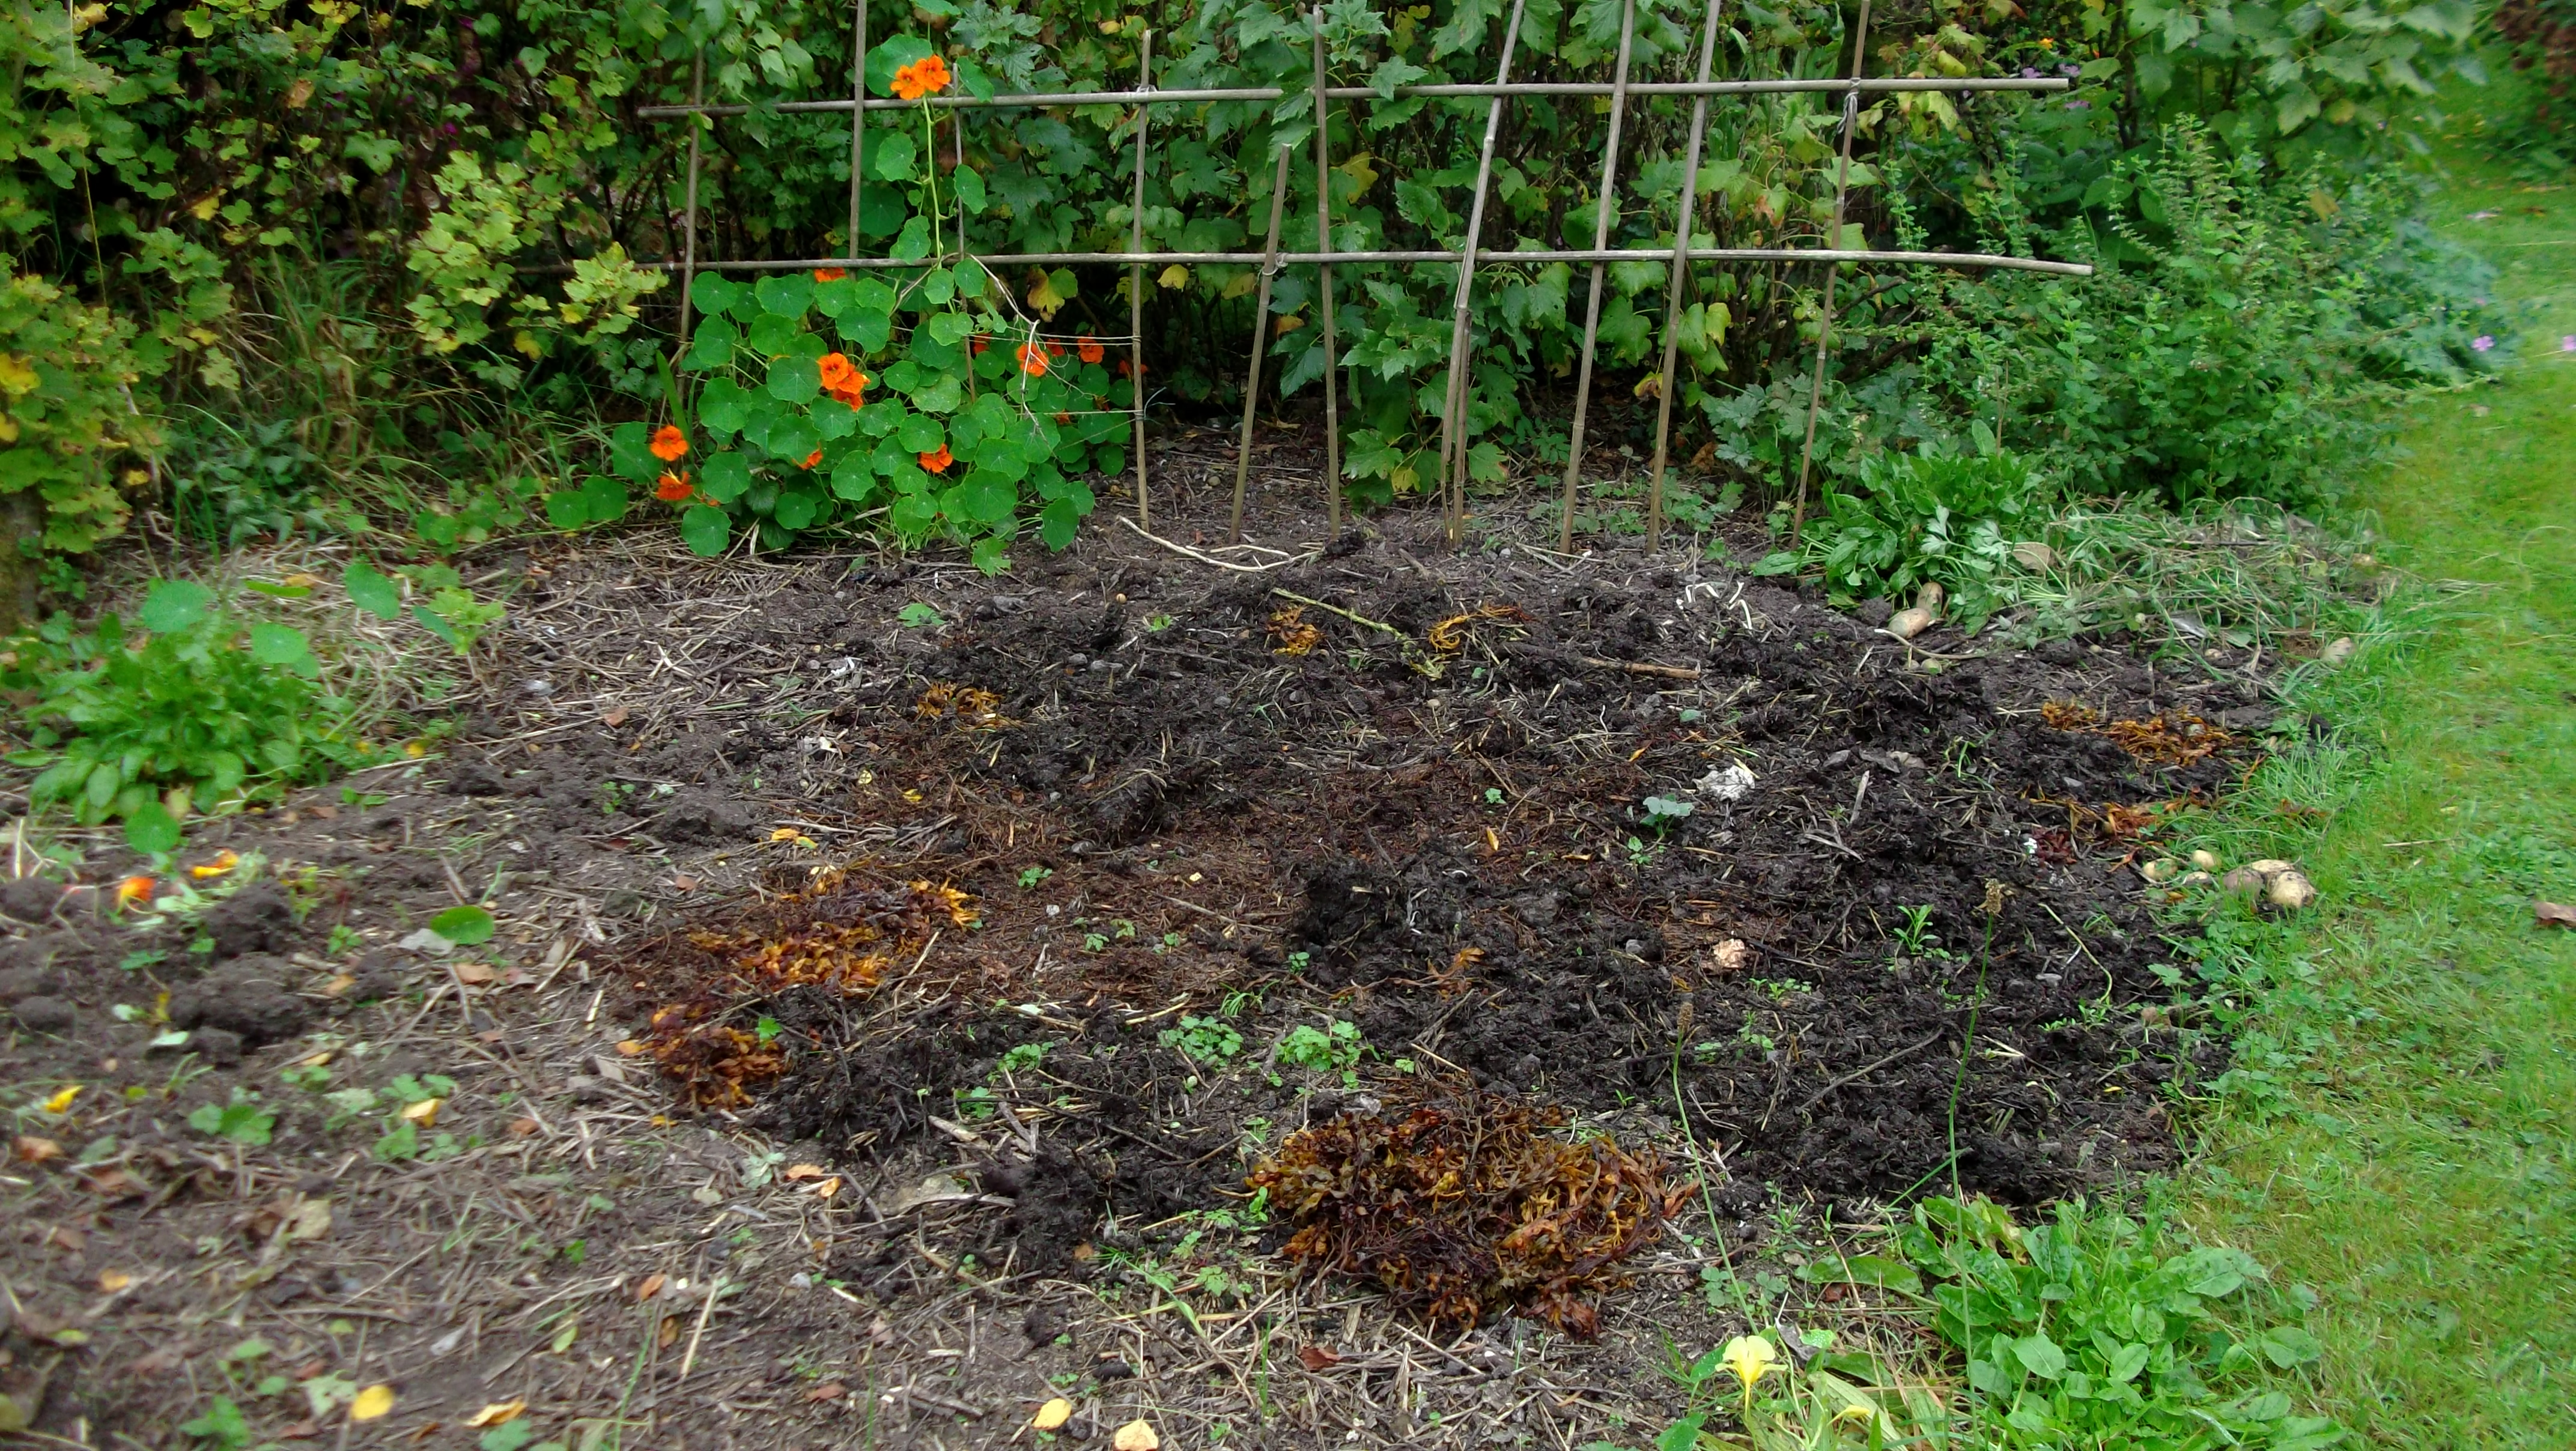 permaculture gardens at bealtainecottage.com 003